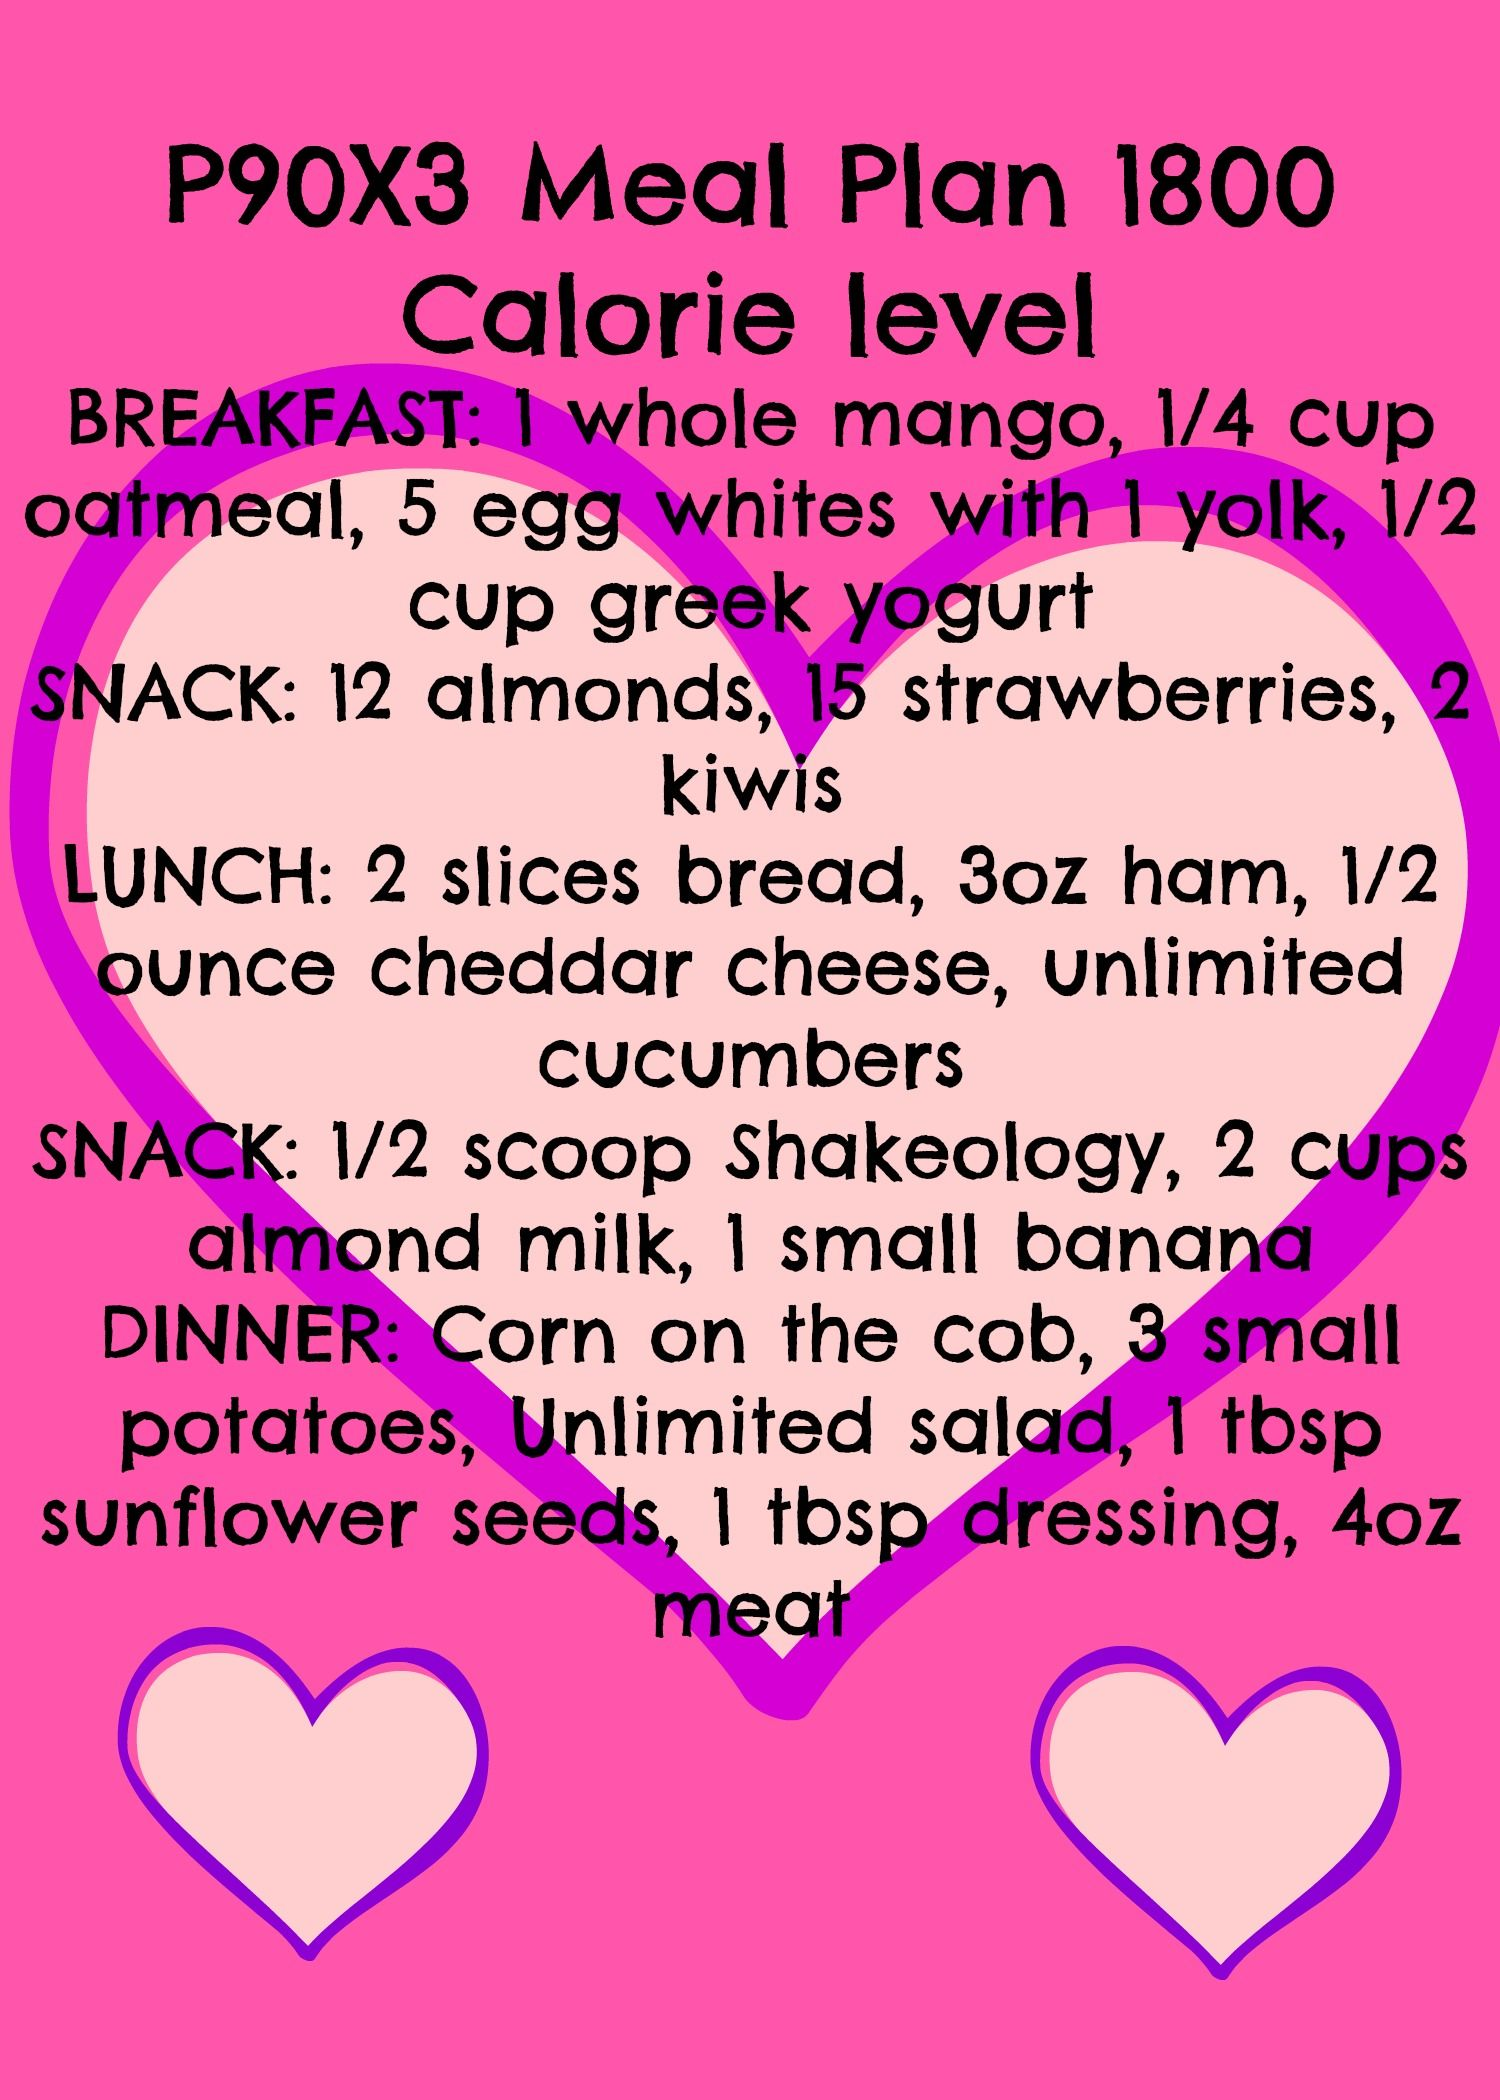 Plan B, 1800 Calorie Level Meal Plan for P90X3 | Getn right